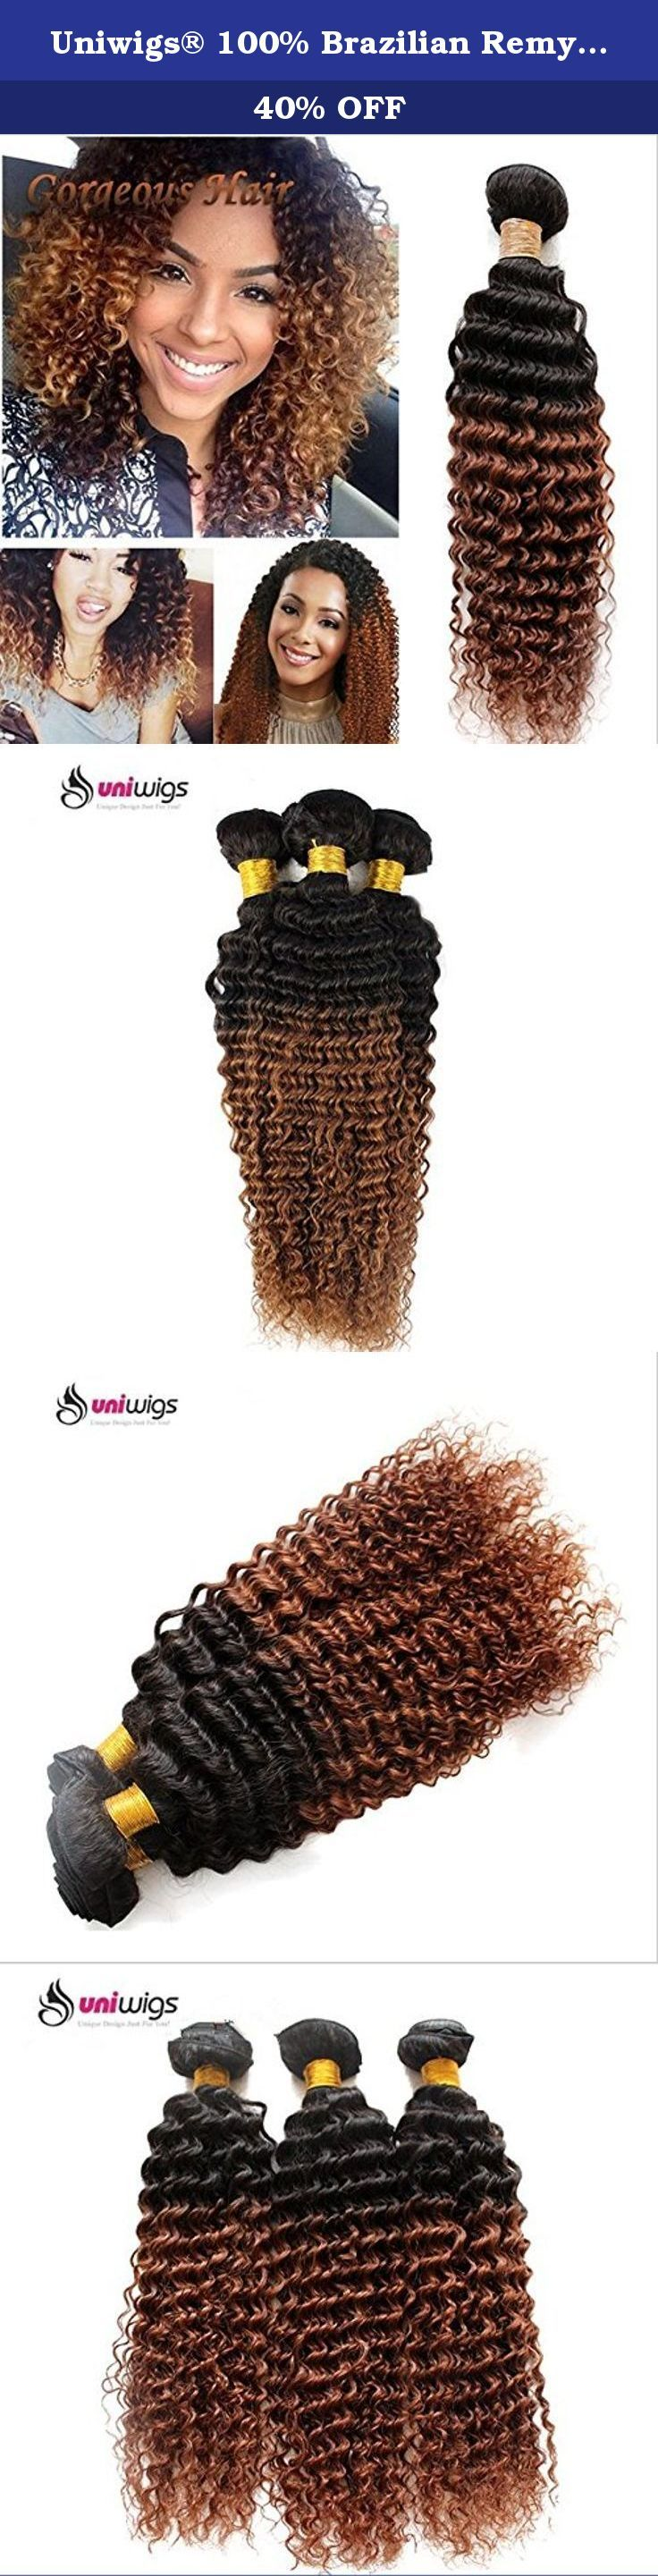 Uniwigs® 100% Brazilian Remy Human Hair Weft Ombre Color Kinky Curly Hair Extensions One Bundle (14inch). Feature: 1. This 100% human hair weft provides volume and length and instantly transforms thin, medium-length. 2. This weft is perfect for your DIY clip-in or fusion or sewing extension method. 3. Exquisite machine stitched craft makes hair secure in the weft. Specifications: 1. Hair material: 100% Brazilian human hair 2. Color: Ombre Color, T1B/33 3.Style:Kinky Curly 4. Hair Length:...